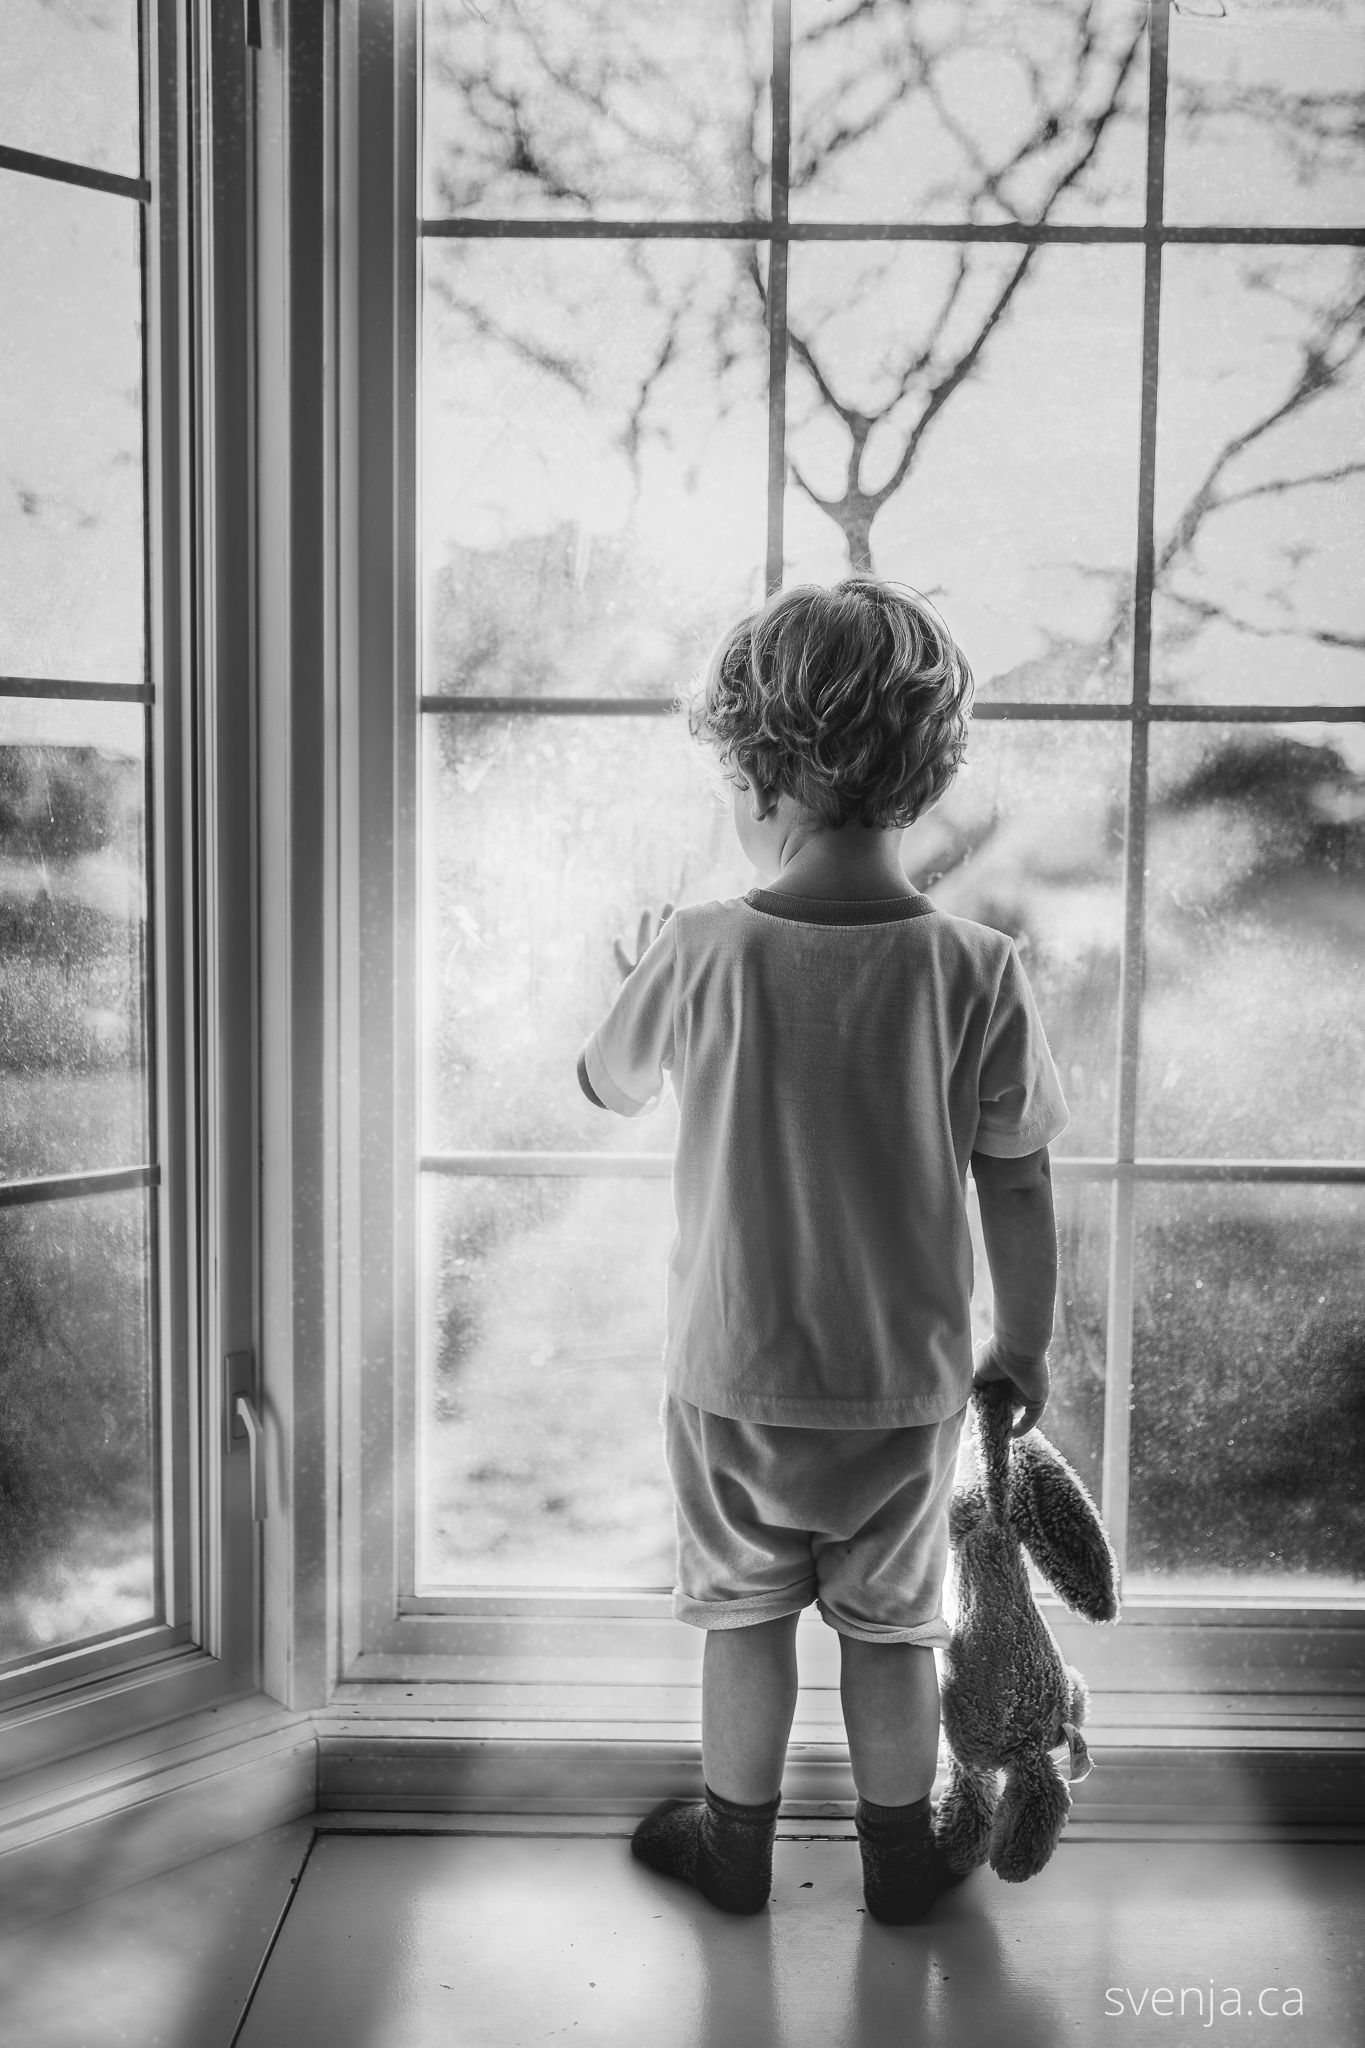 black and white photo of a toddler holding his stuffed bunny wild looking outside of a bay window